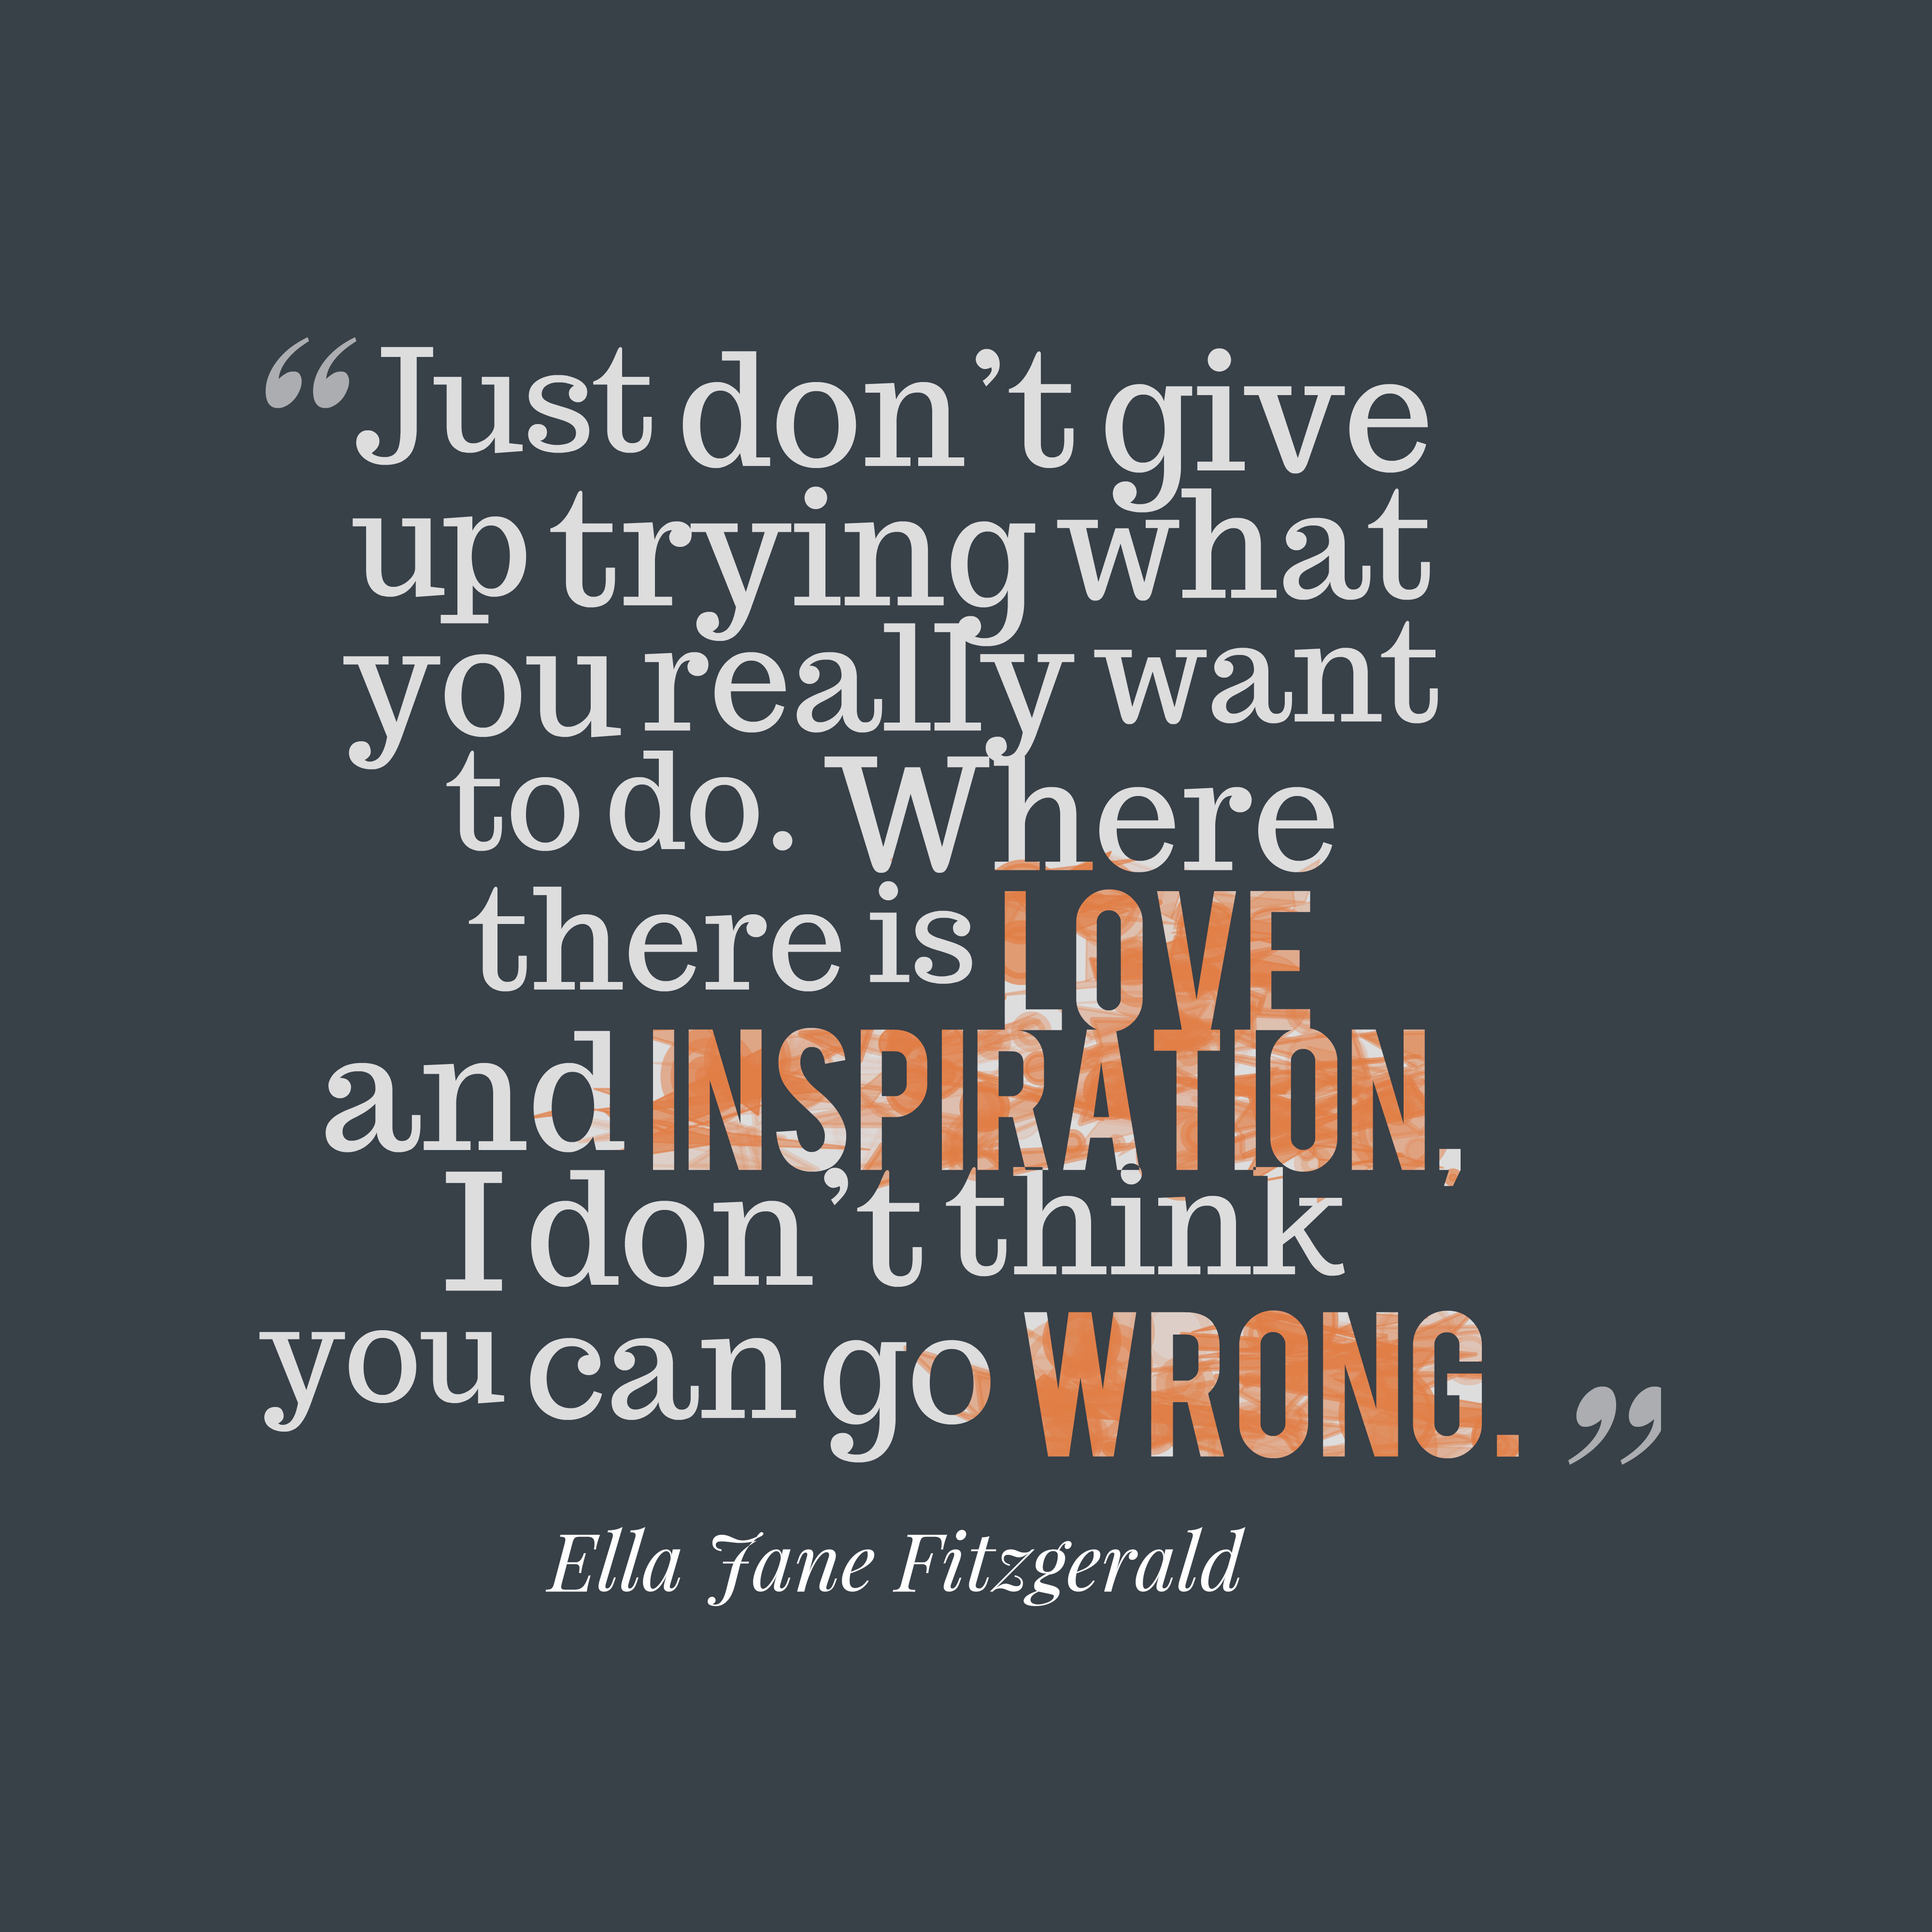 Ella Jane Fitzgerald Quote About Giving Up